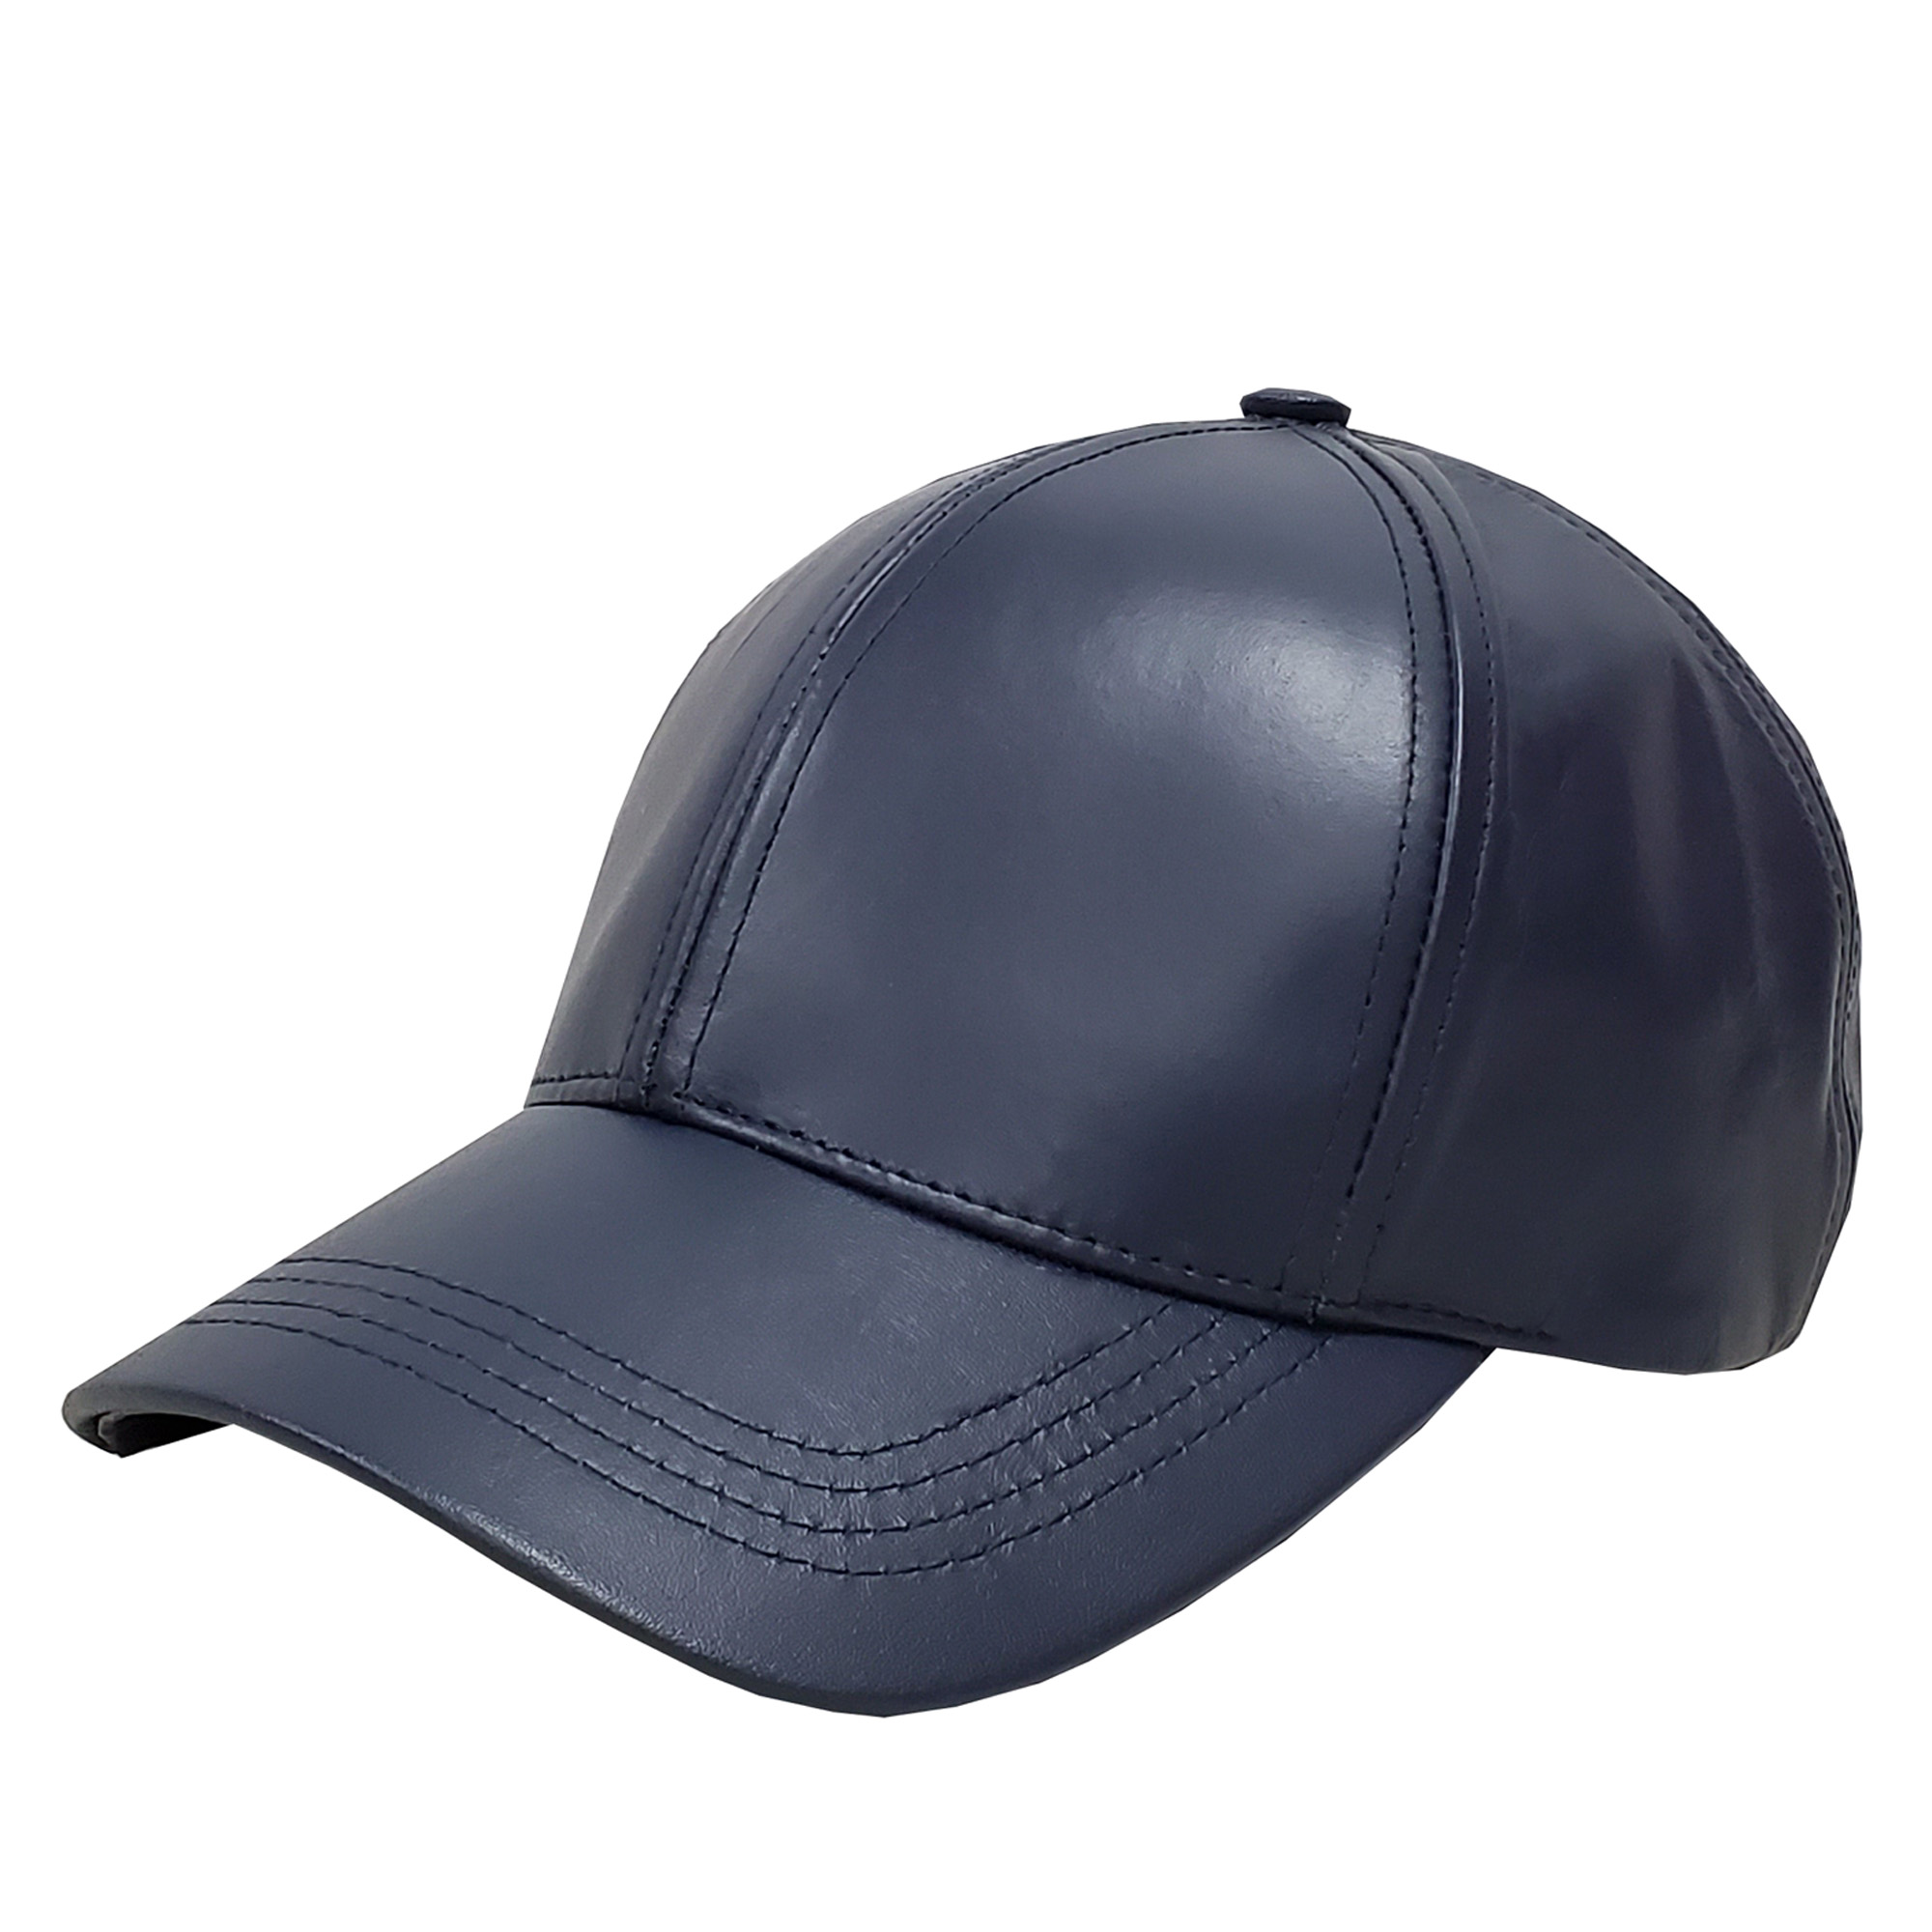 Navy Blue Leather Baseball Cap